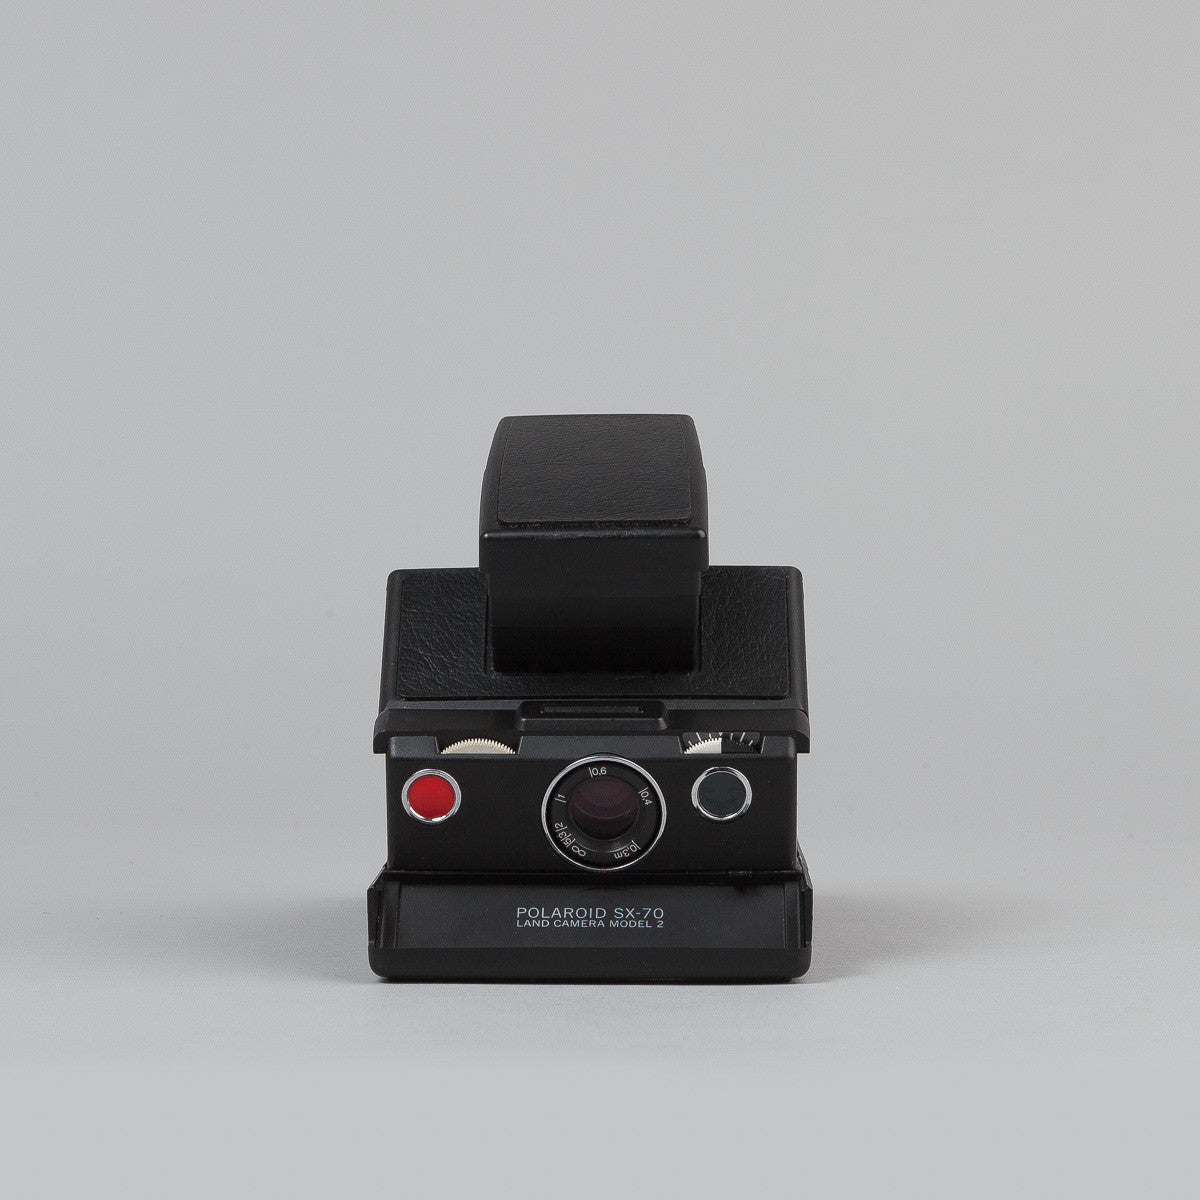 Impossible Polaroid SX-70 Camera - Model 2 - Black / Black Skin